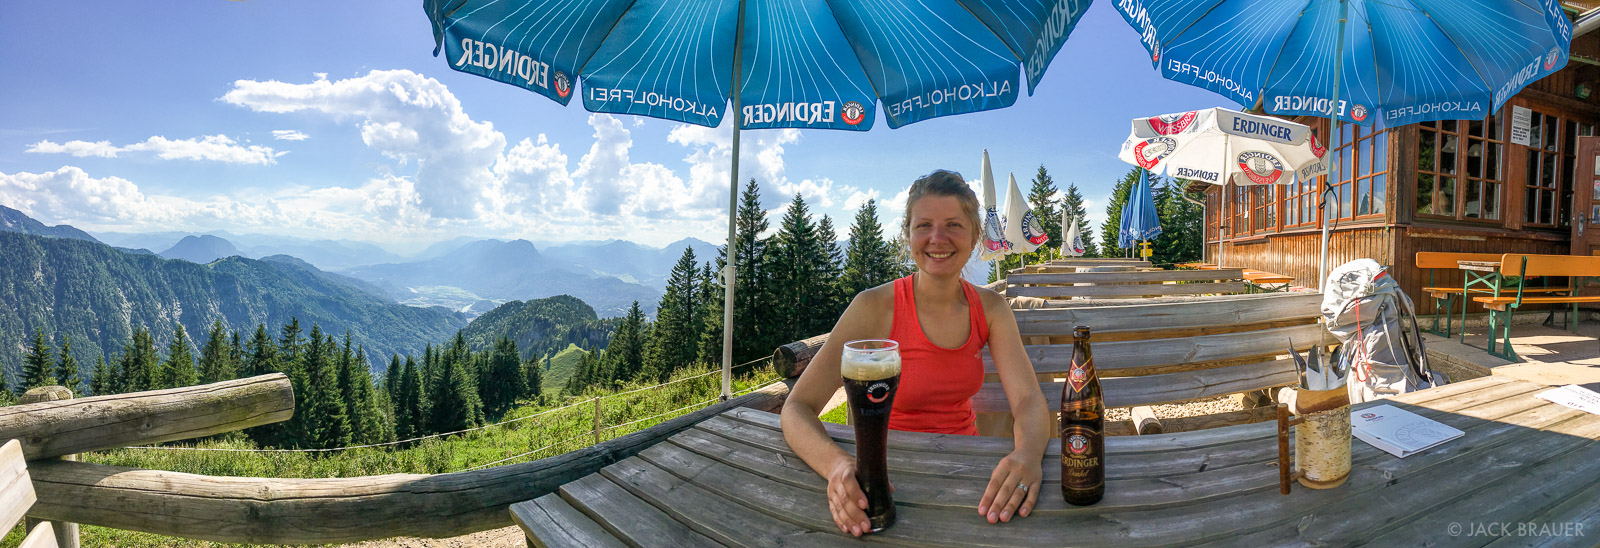 Austria, Kaisergebirge, Vorderkaiserfeldenhütte, beer, hut, Alps, photo